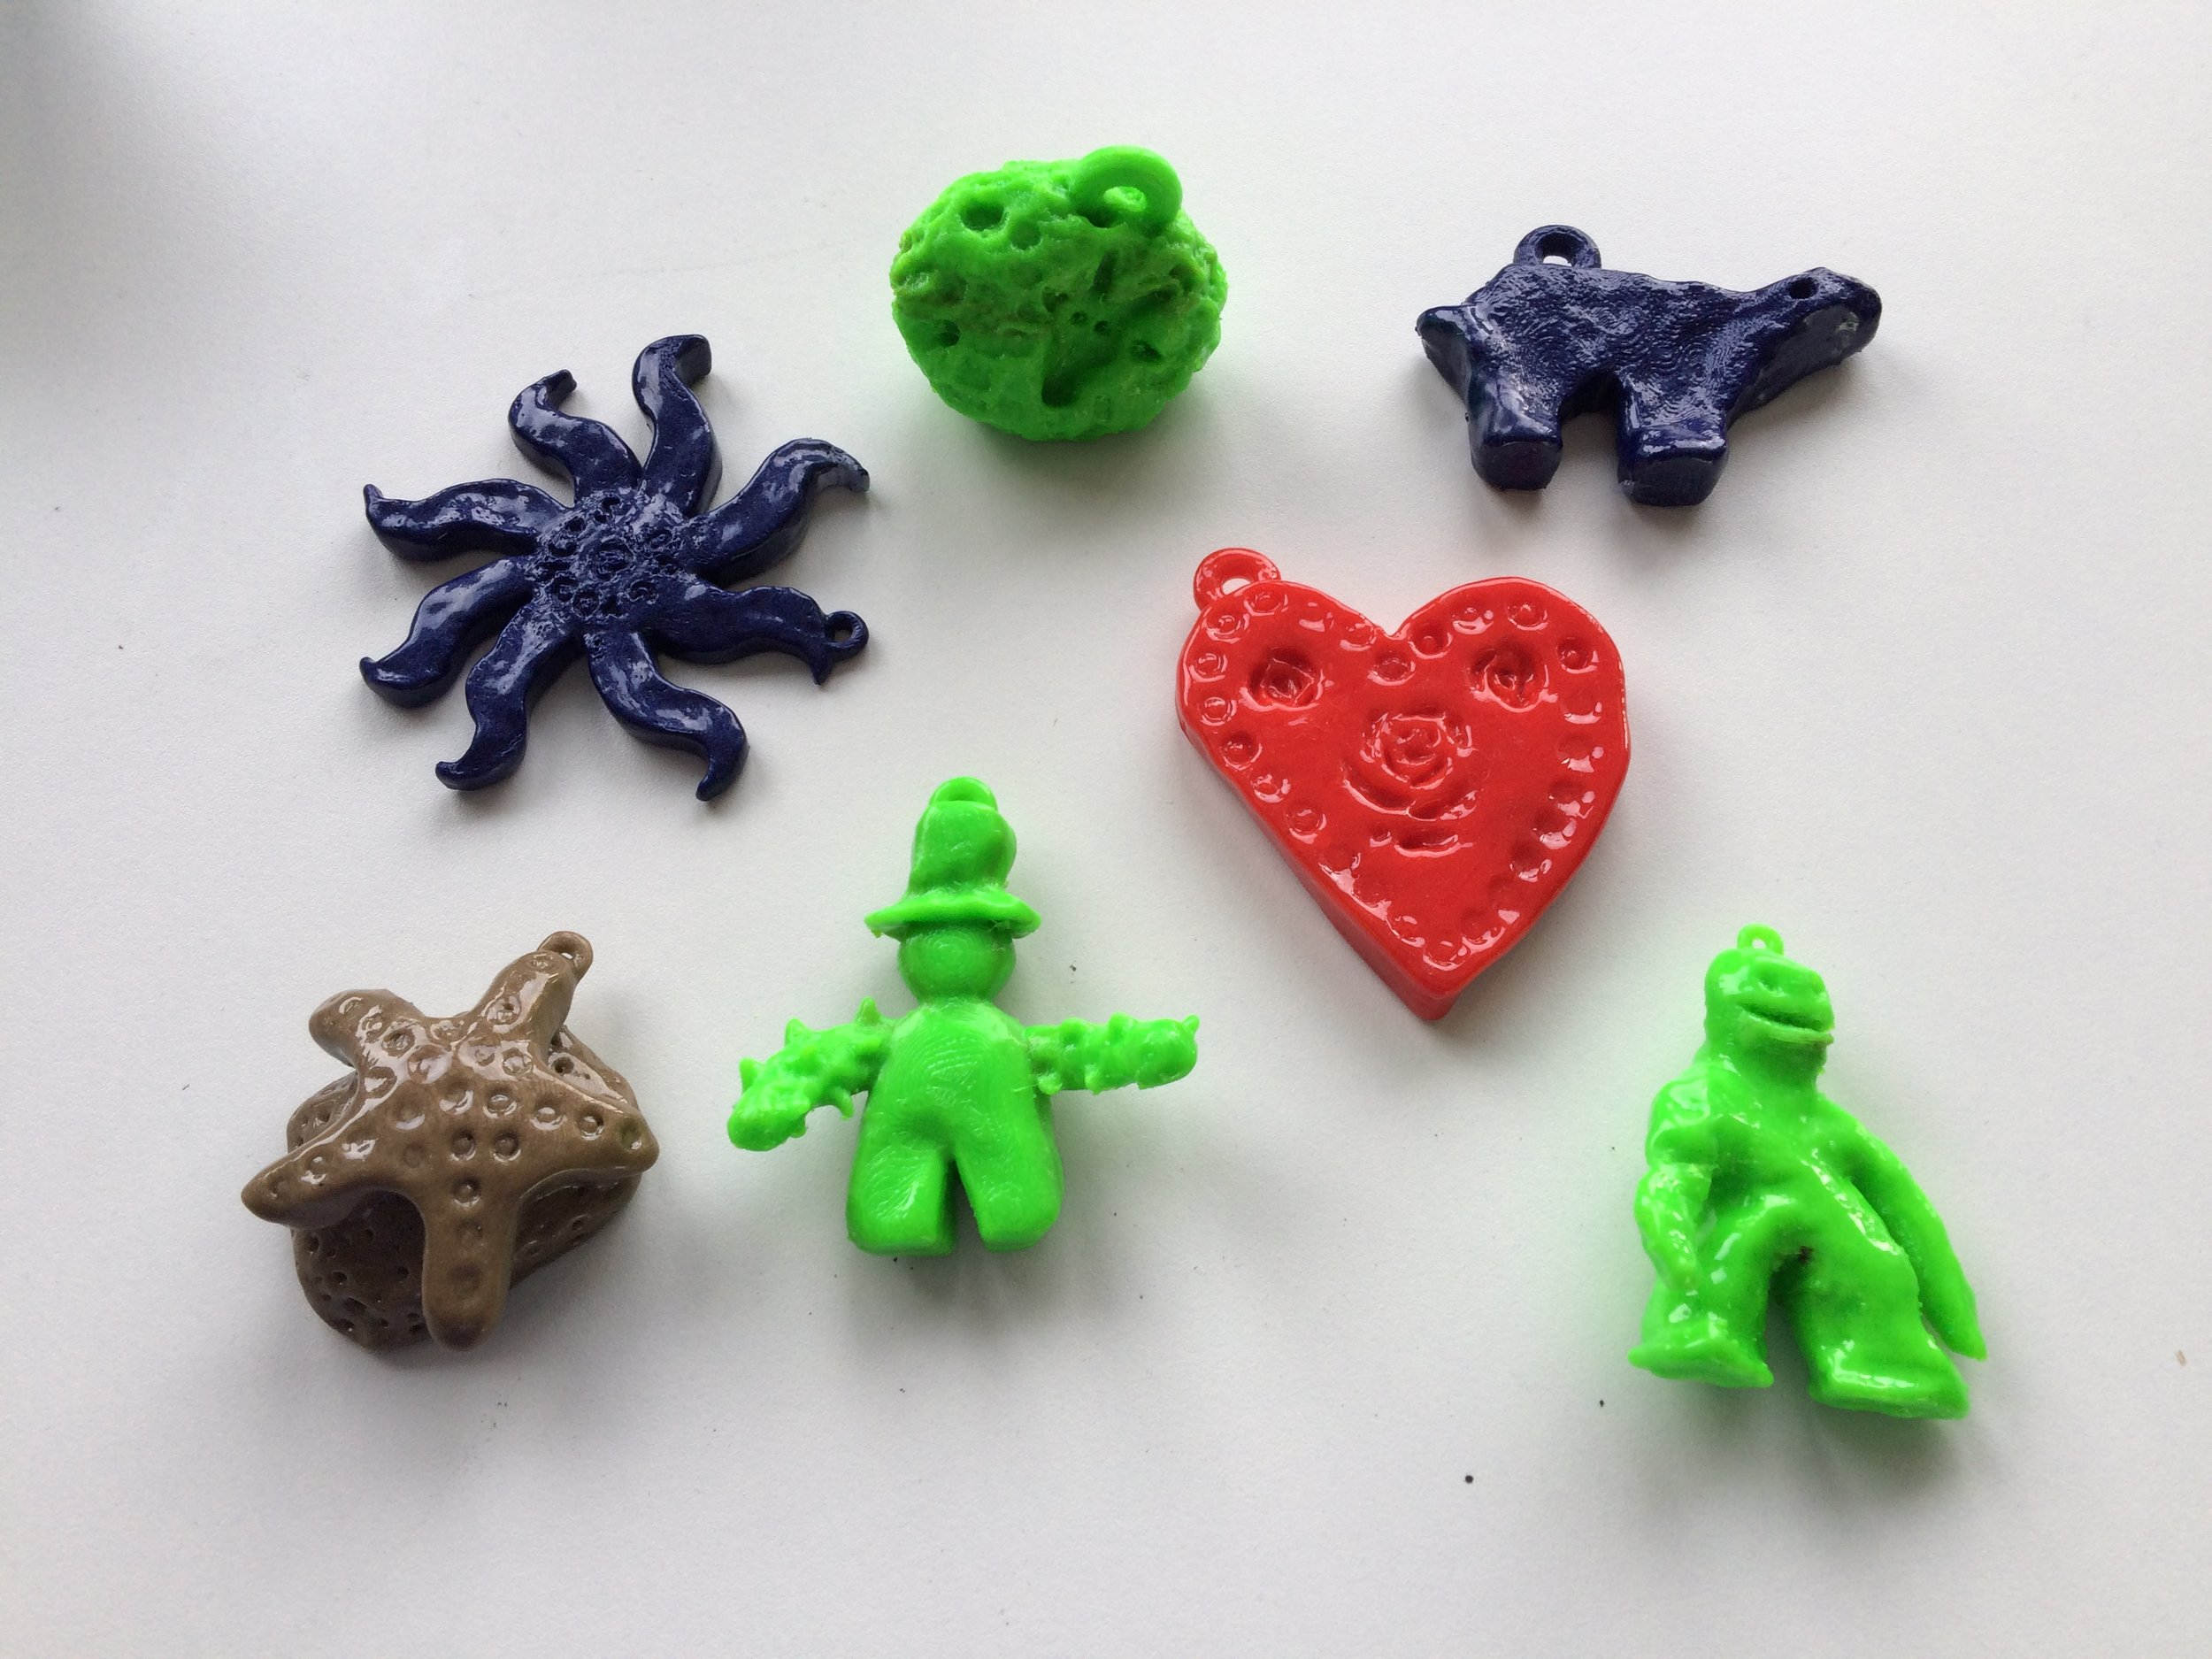 3D printed objects created by Varndean Year 7 students